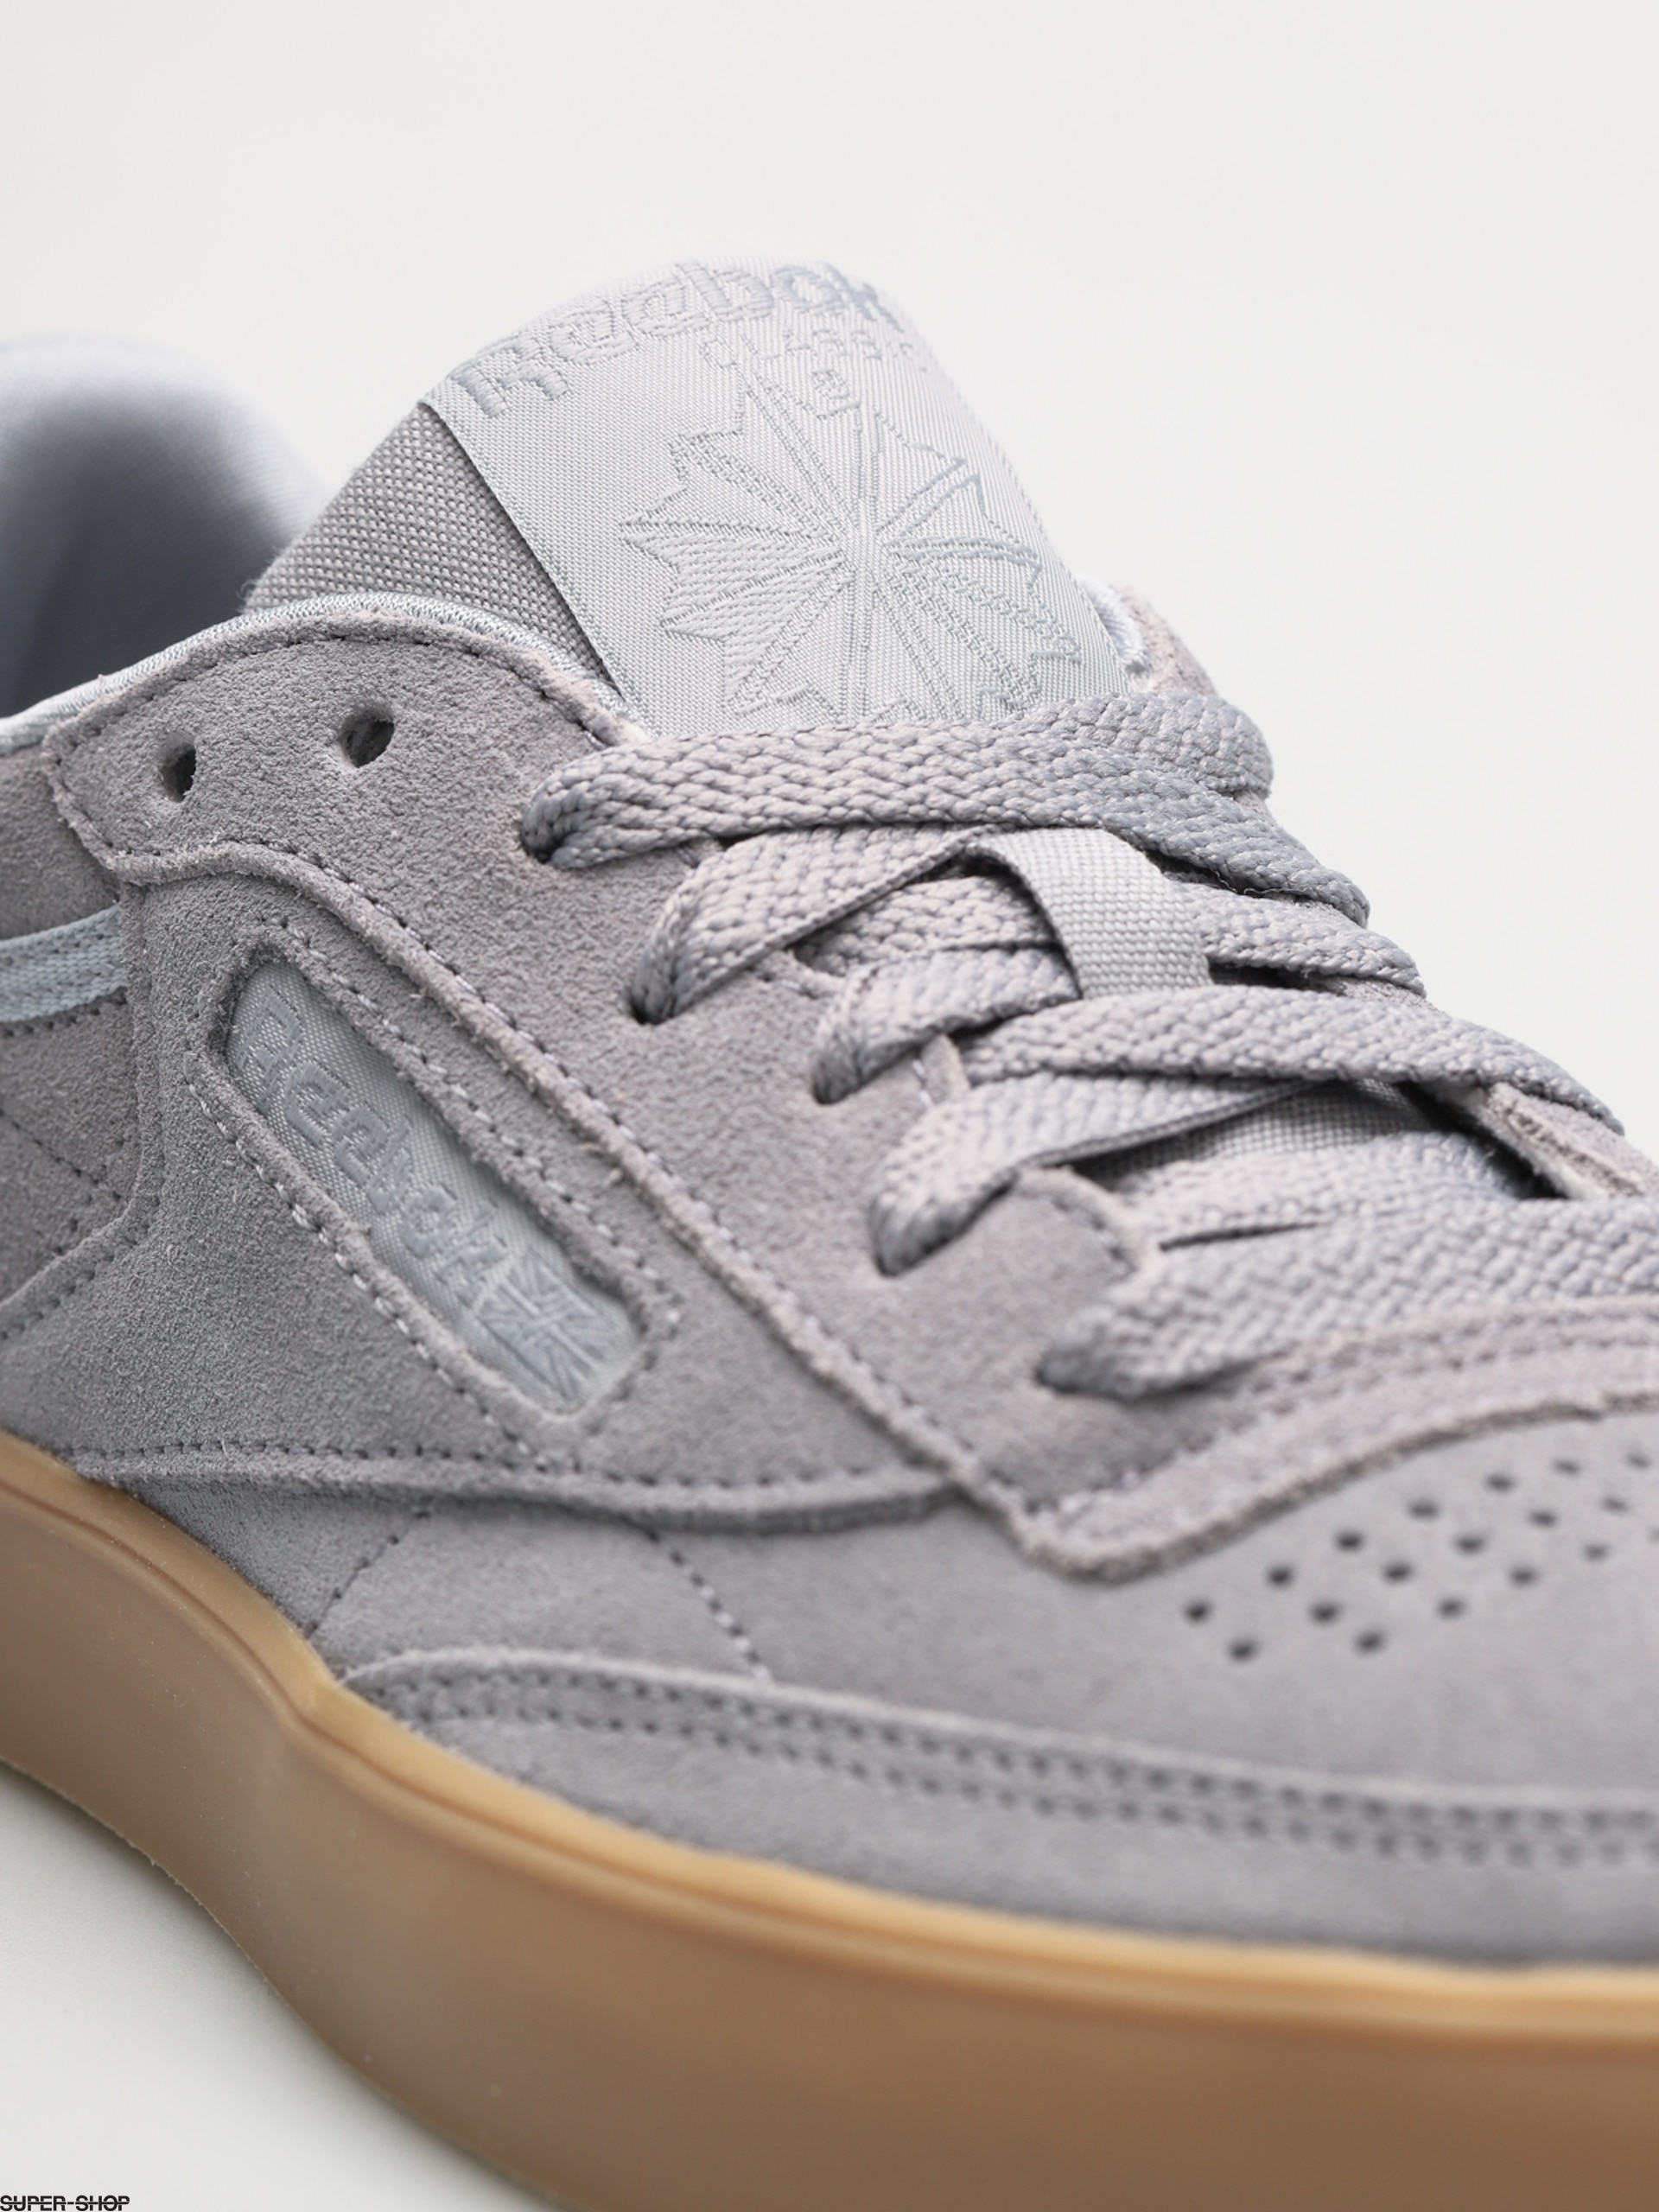 13d501ccfac Reebok Shoes Club C 85 Fvs Wmn (gum cool shadow gum)